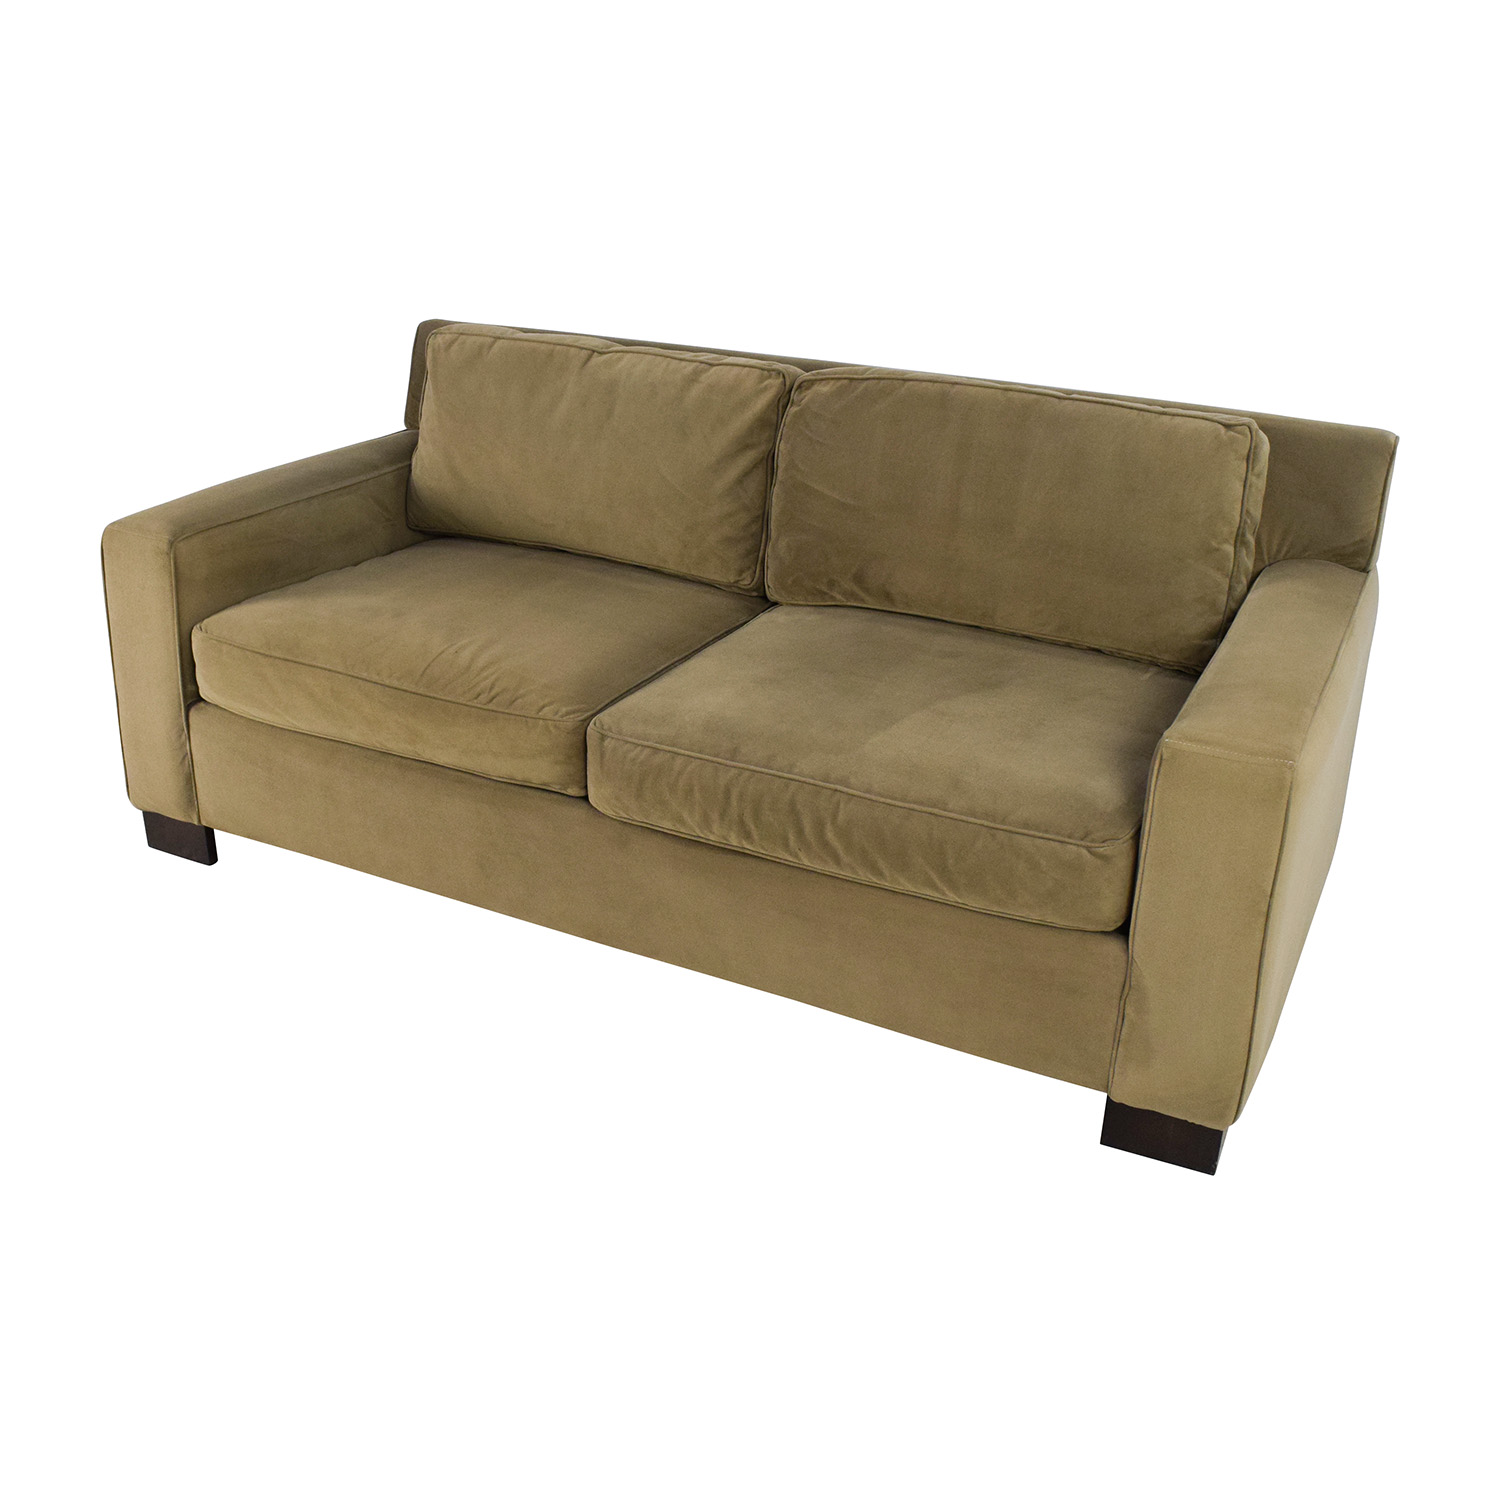 westelm sofa bed mid century modern designs 50 off west elm classic henry beige cushion